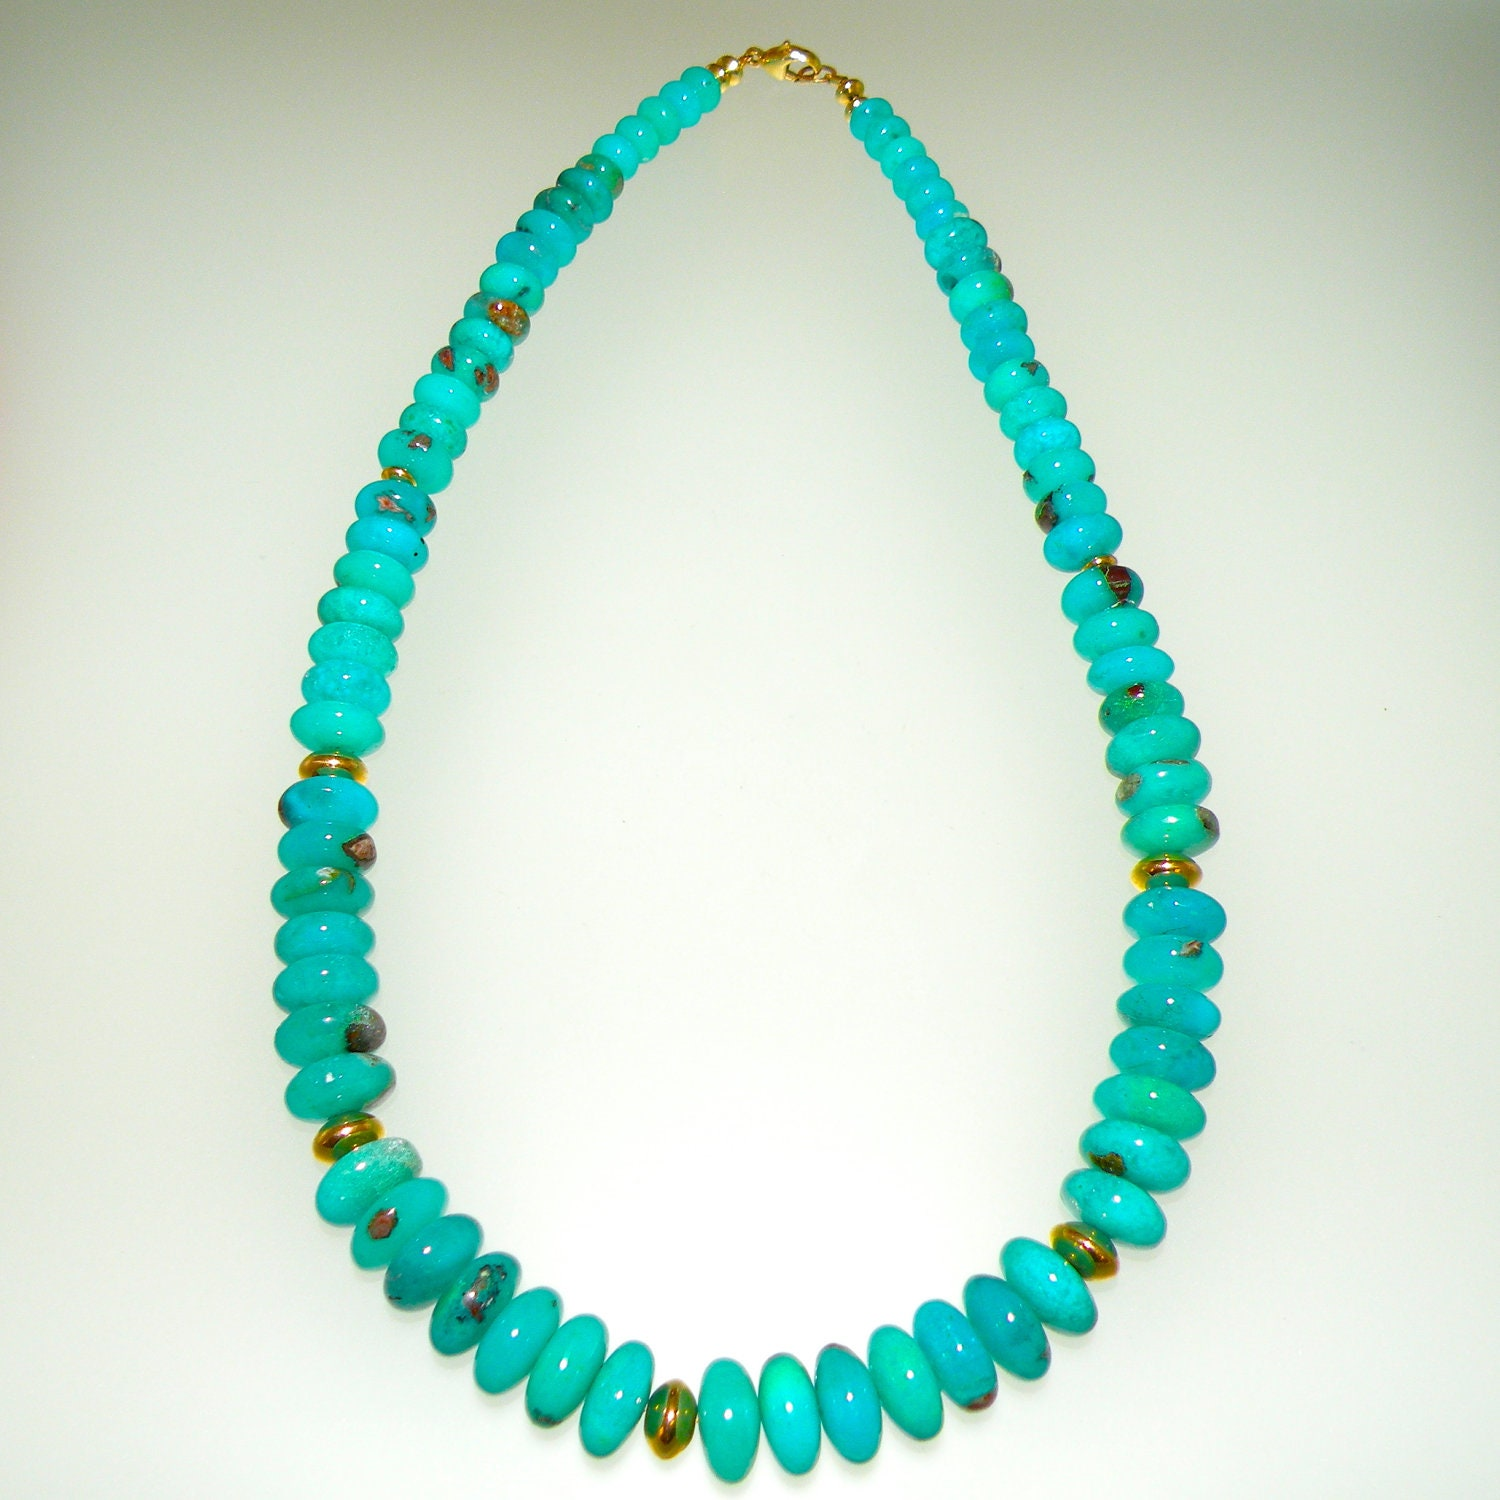 Gem Chrysocolla Silica 100% Natural Hand Strung Bead Necklace from Arizona, free U.S. shipping